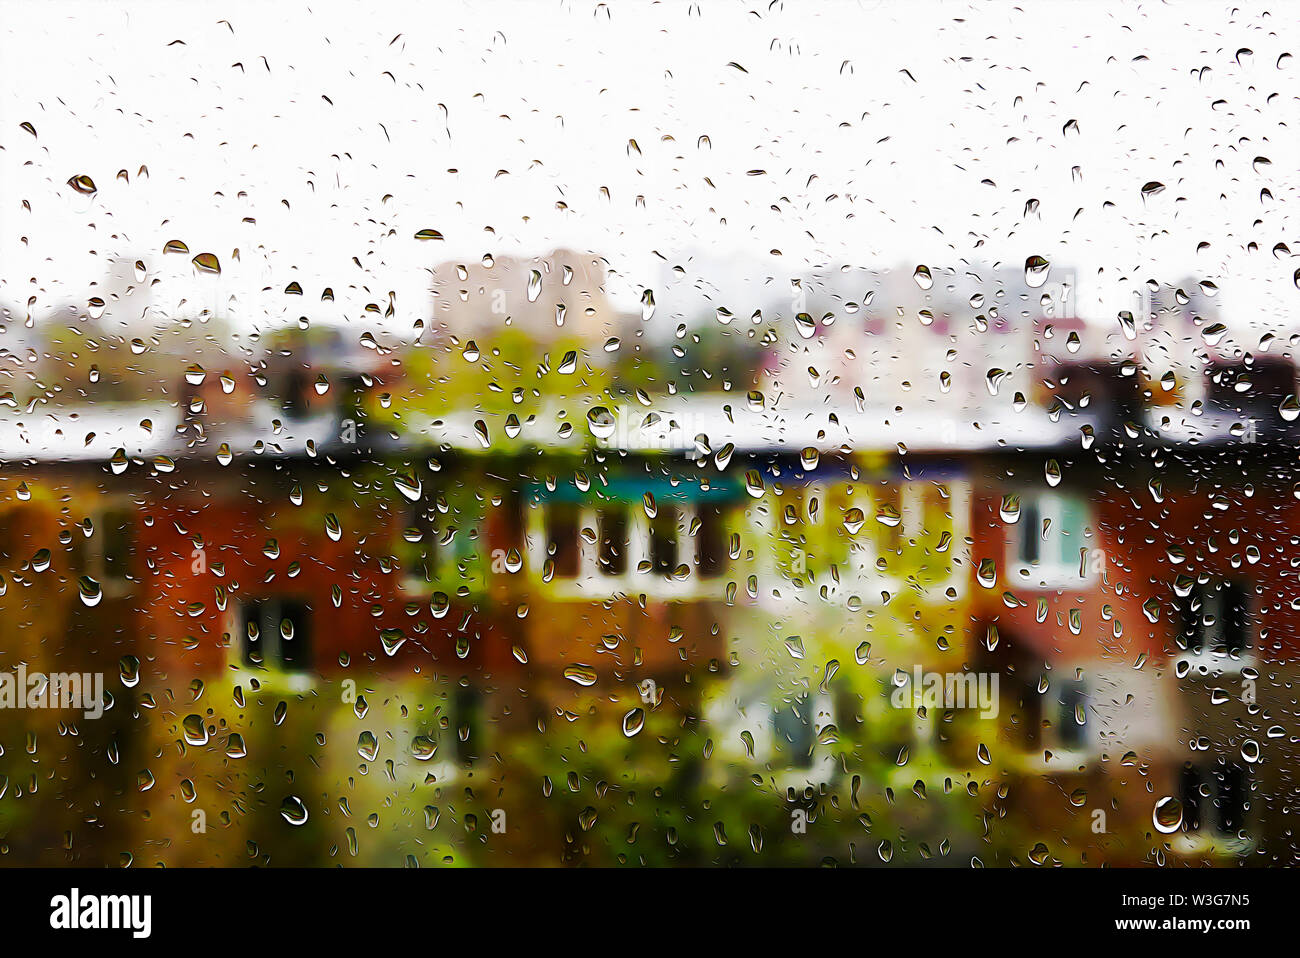 Drops of water on the window glass. Behind the glass silhouettes of buildings with windows. Oil painting - Stock Image